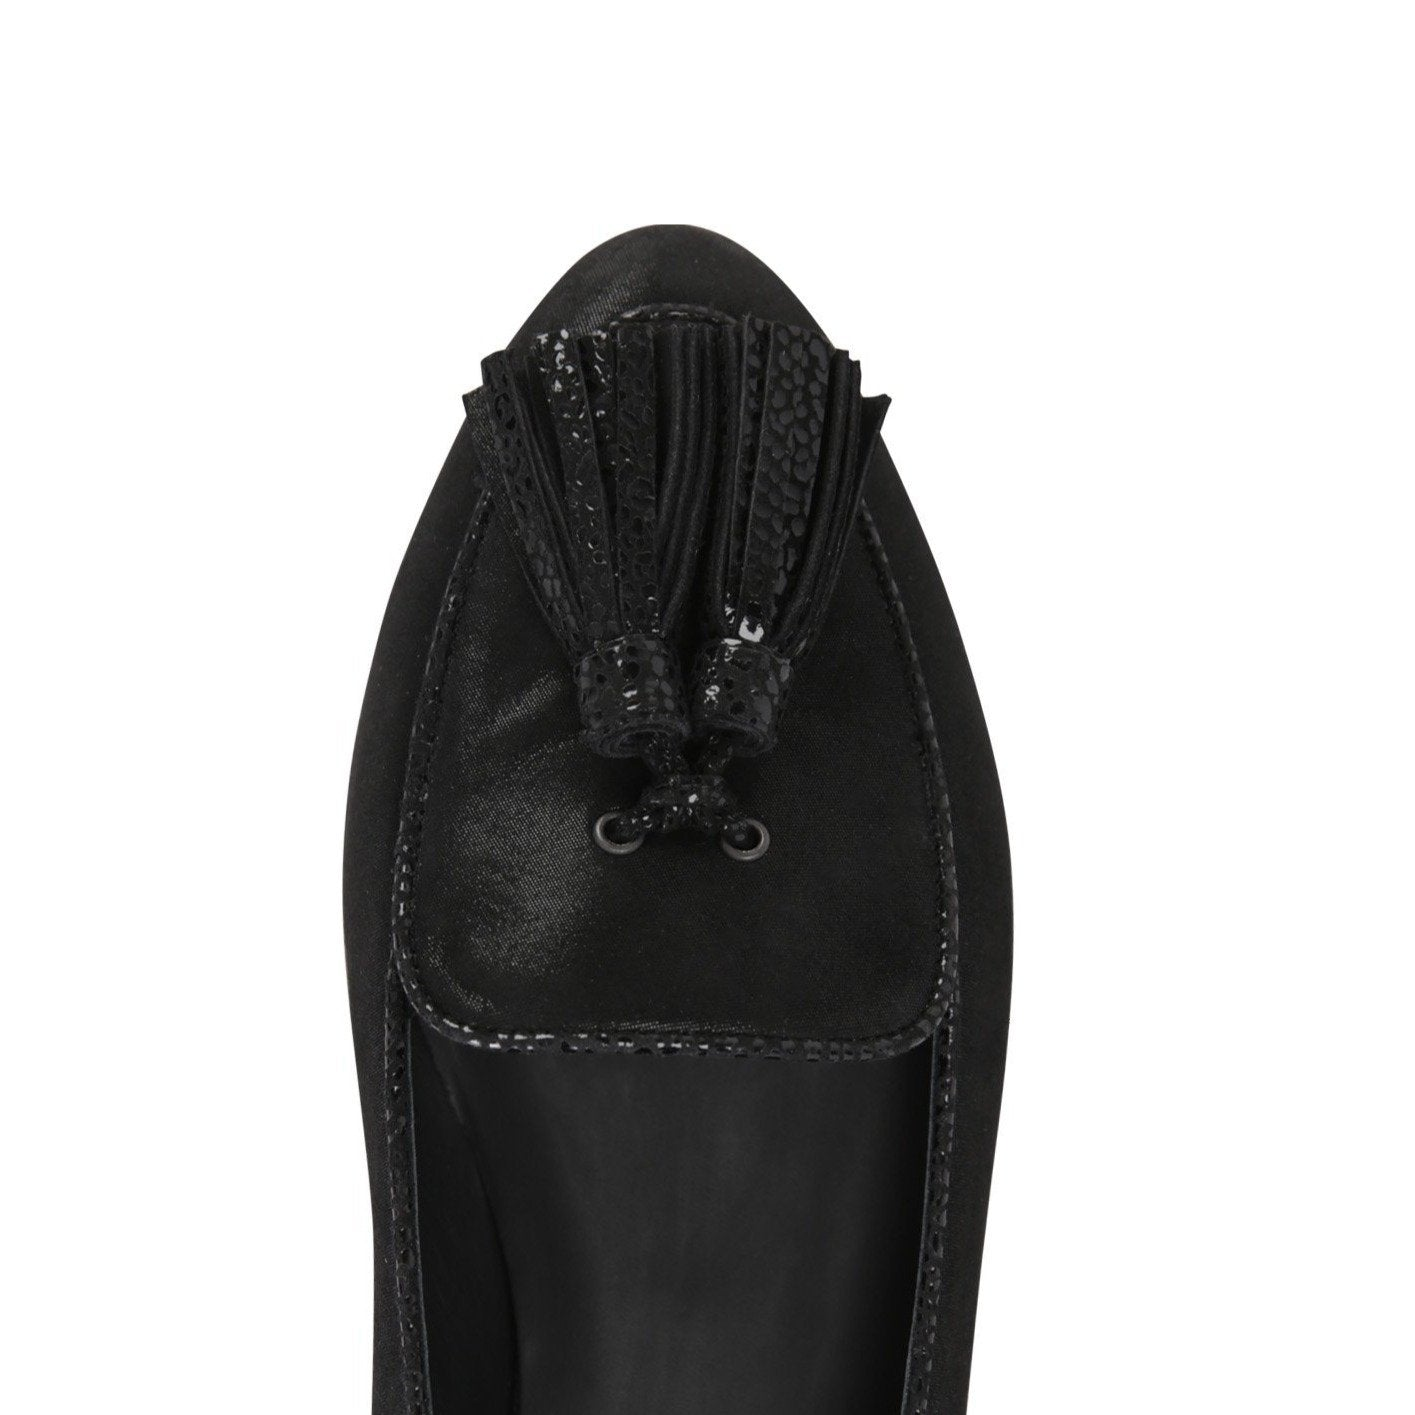 REGGIO - Hydra + Karung Nero Tassel, VIAJIYU - Women's Hand Made Sustainable Luxury Shoes. Made in Italy. Made to Order.